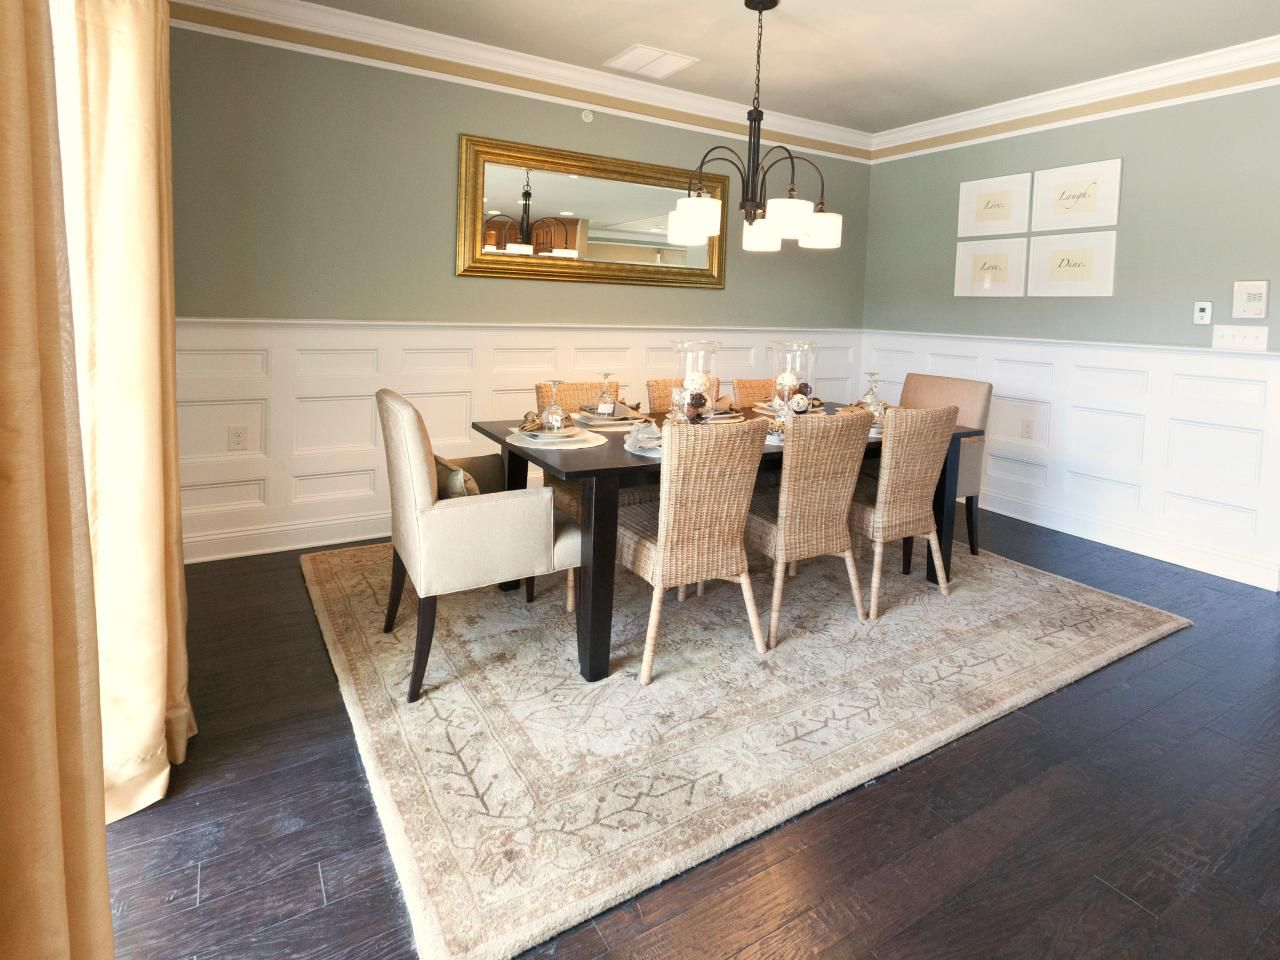 White Crown Molding And Wainscoting Give An Air Of Formality To This Sage  Green Dining Room. A Neutral Area Rug Ties Together The Transitional Beige  Chairs ...